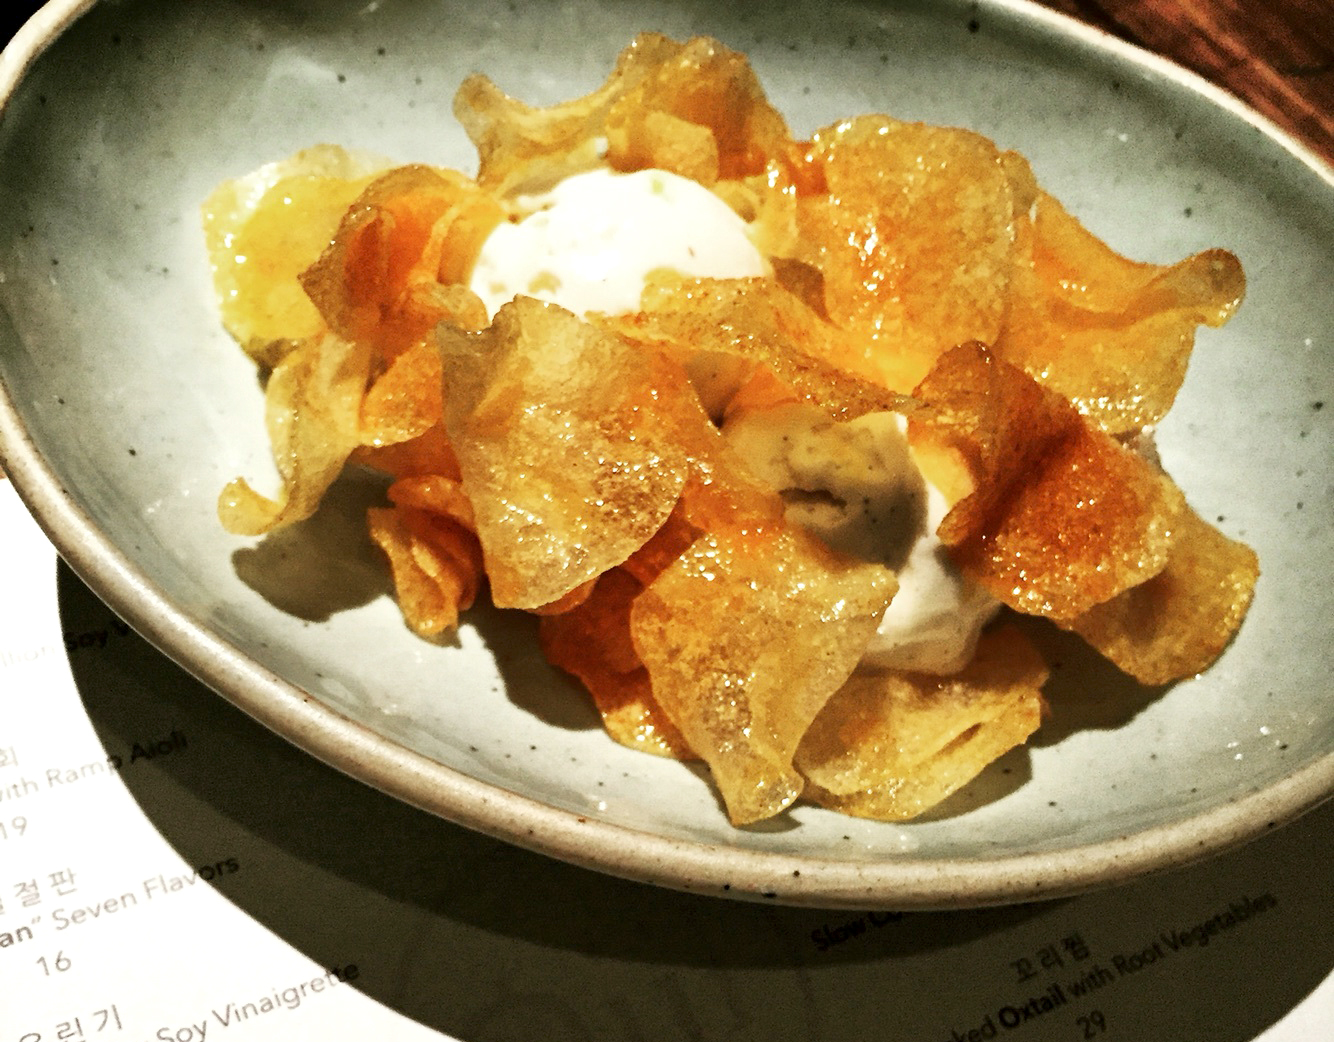 chefs-society-collaboratice-culinary-organization-oiji-restaurant-nyc-columns-edgar-honey-butter-chips